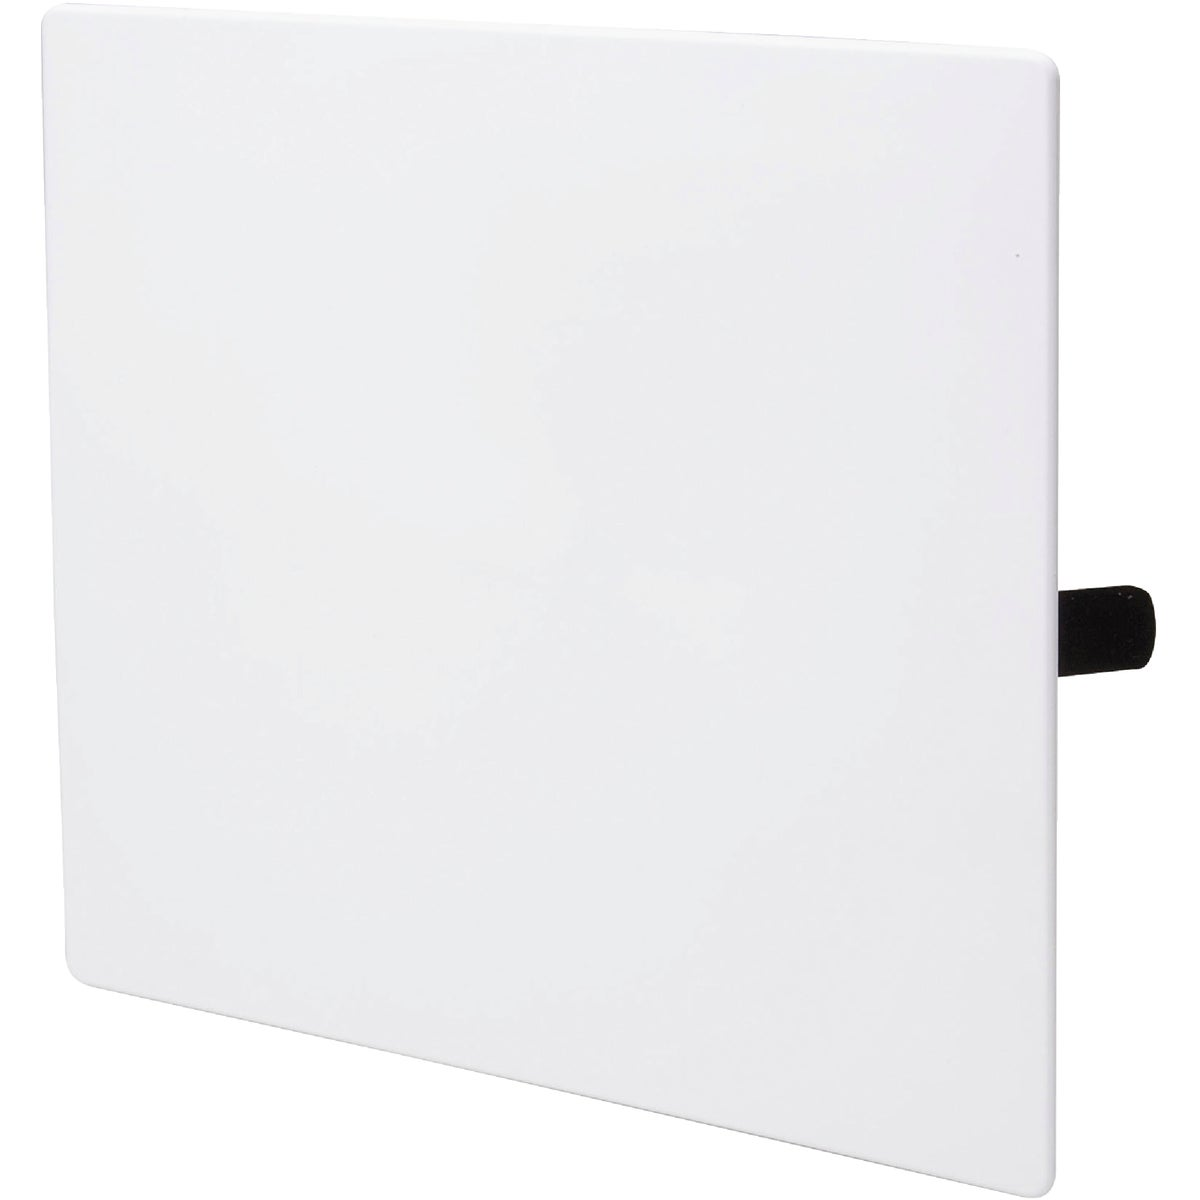 "14"" SQ ACCESS PANEL - 156-712 by Mueller B K"